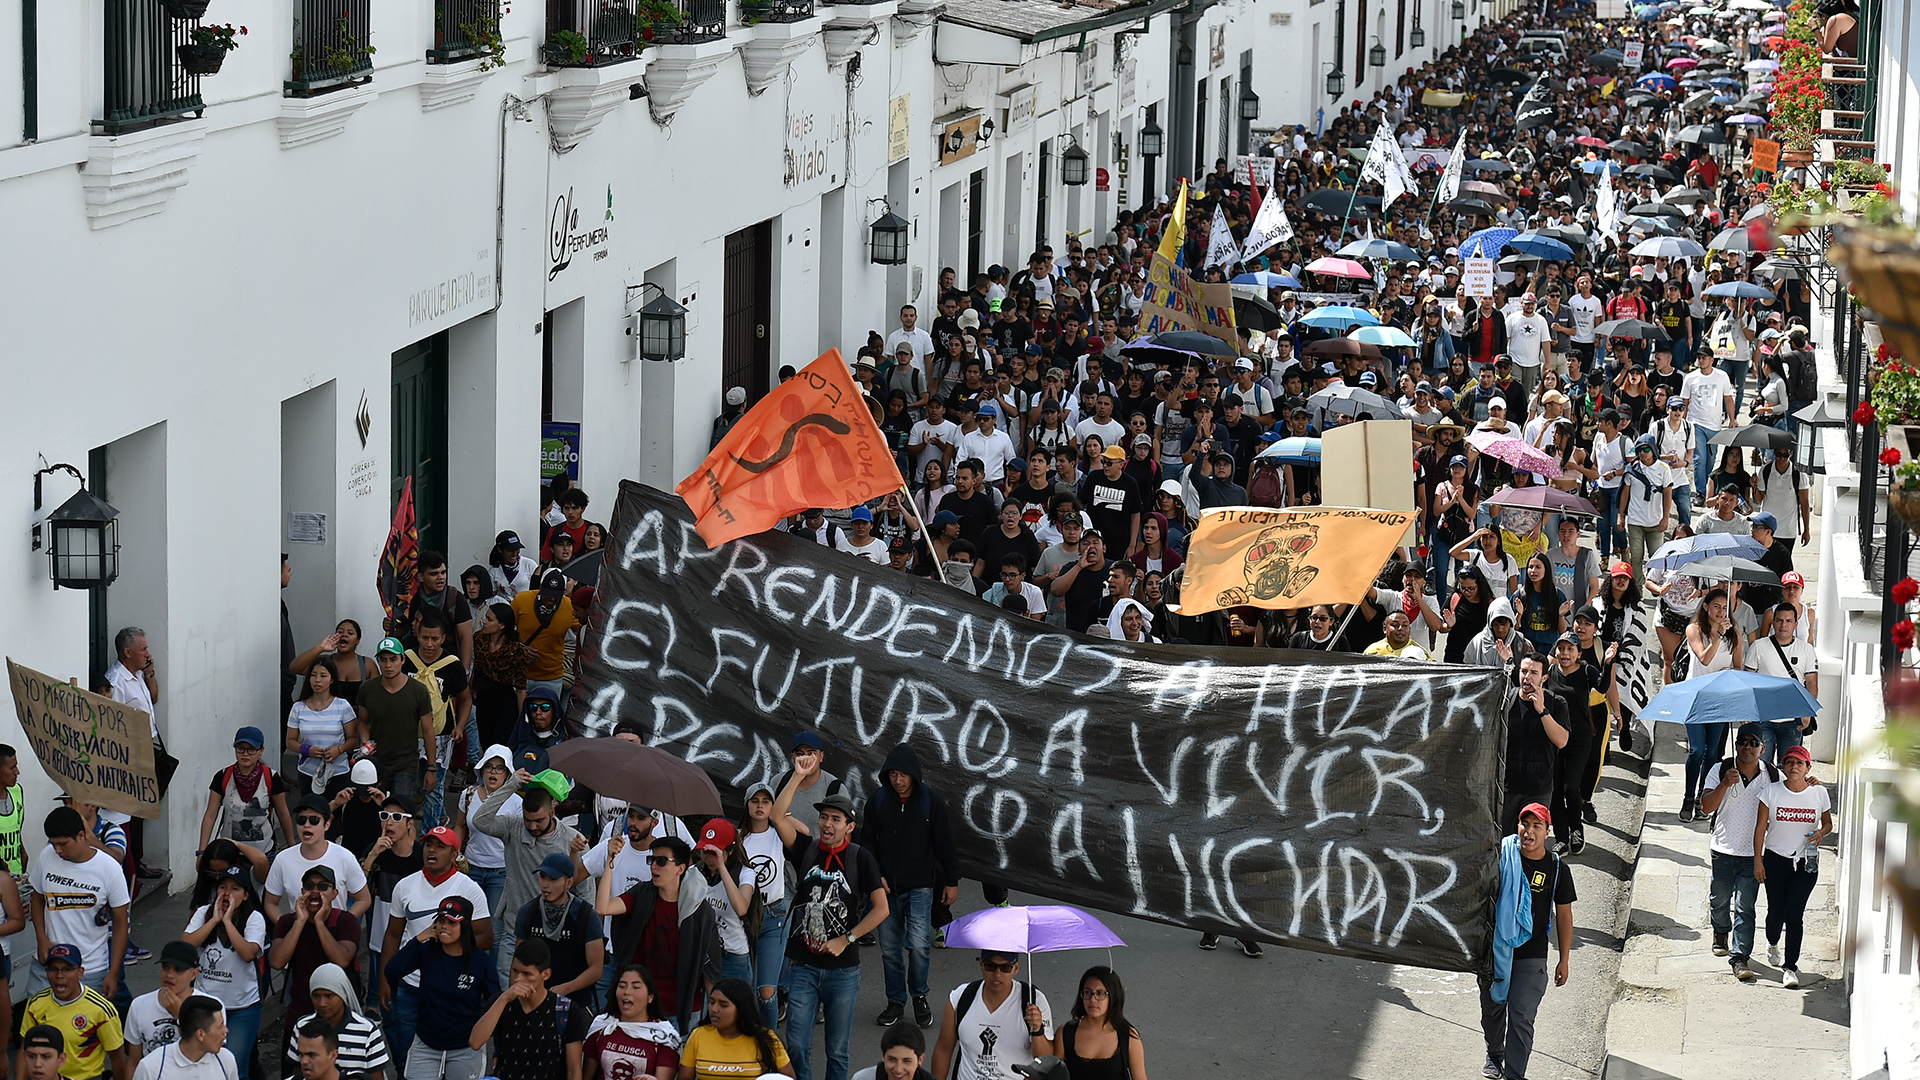 Students march during a nationwide strike called by students, unions and indigenous groups to protest against the government of Colombia's President Ivan Duque in Popayan, Cauca department, on November 21, 2019. (Photo by Luis ROBAYO / AFP)